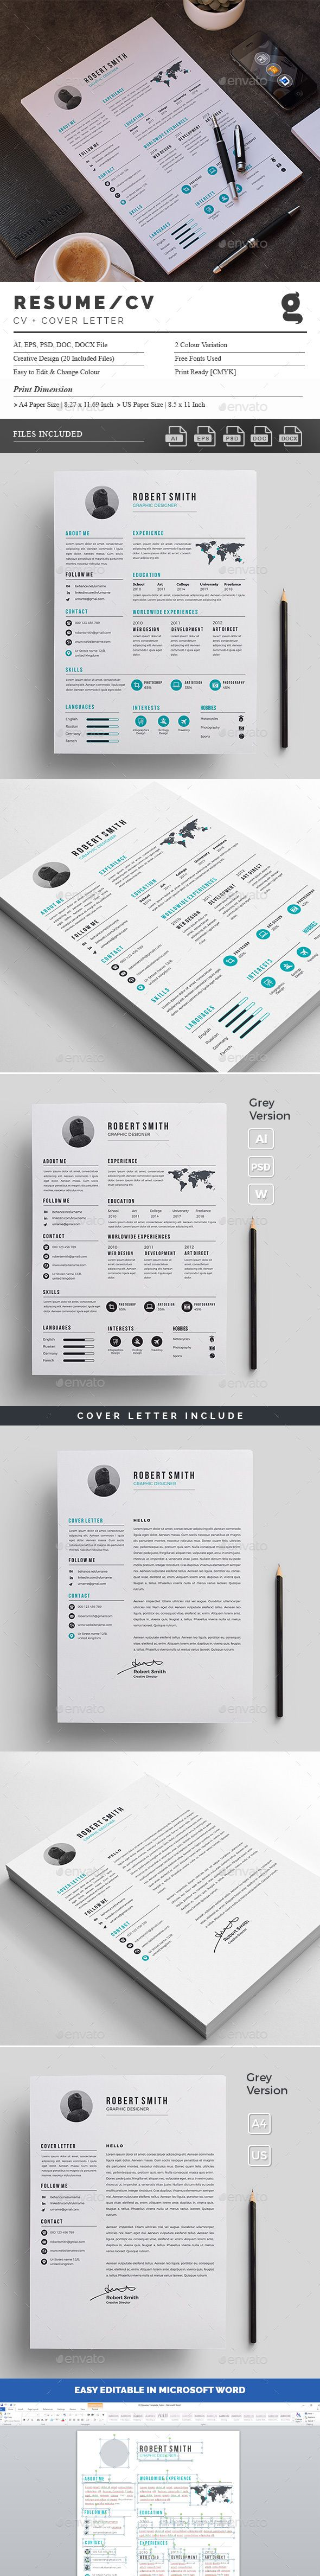 pin by bashooka web  u0026 graphic design on killer resume template  u0026 design